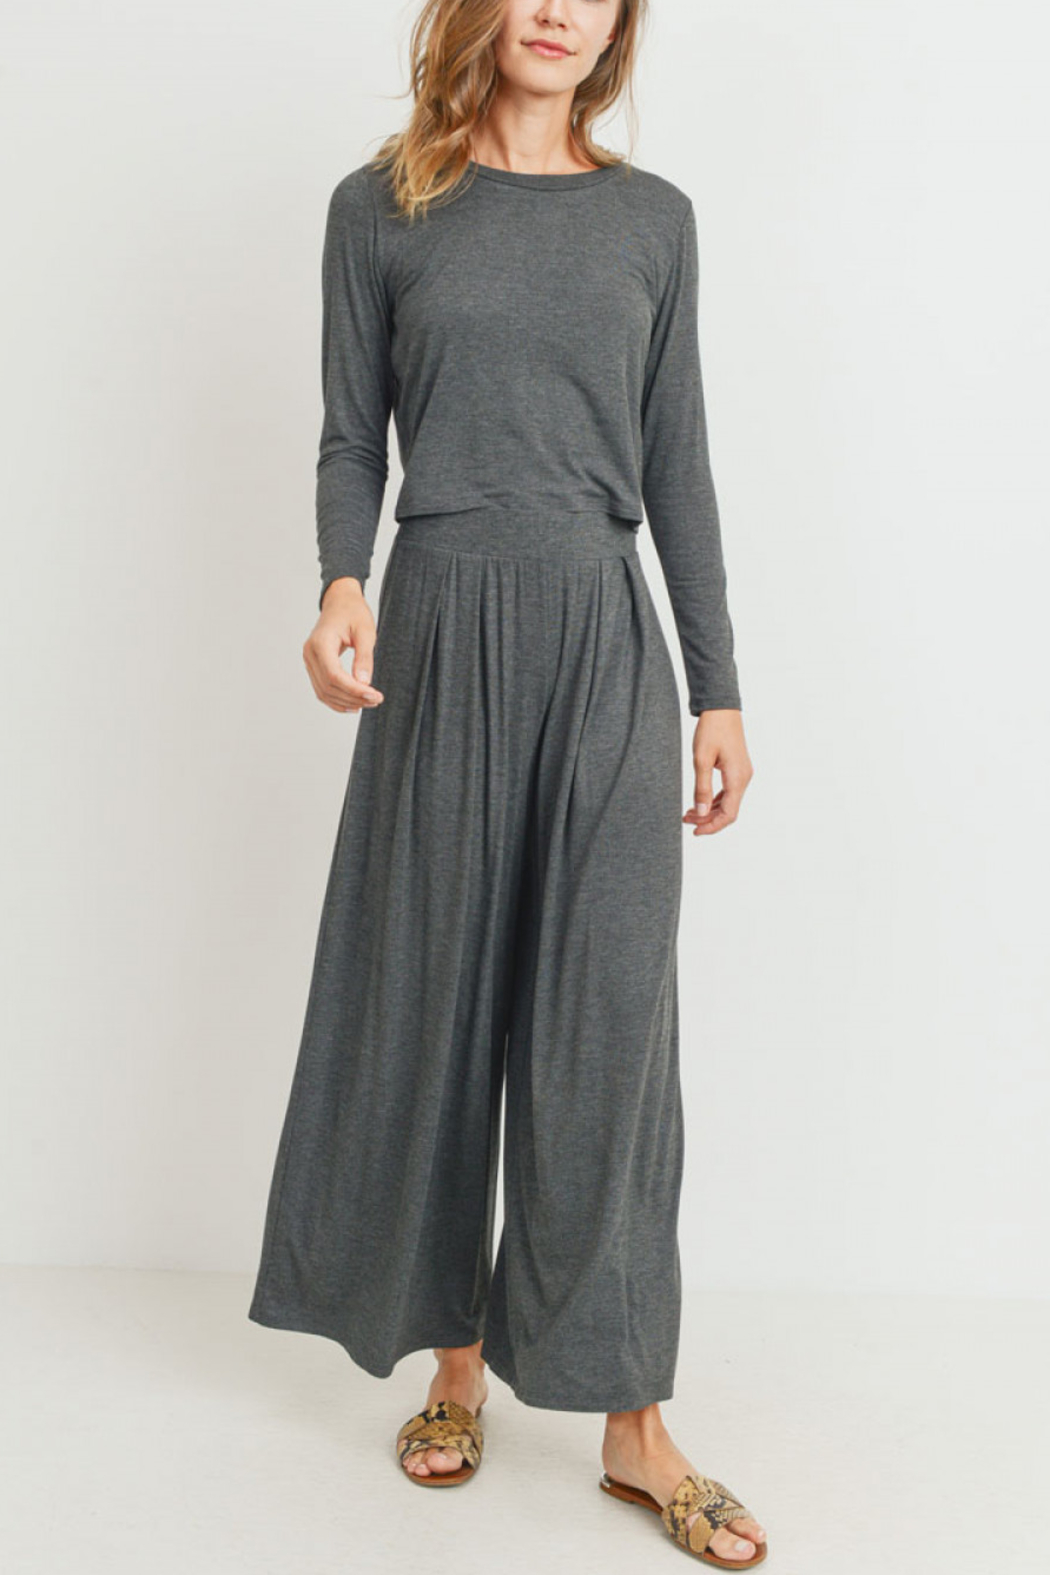 Lyn -Maree's Jersey Culotte Pants Knit Set - Front Cropped Image